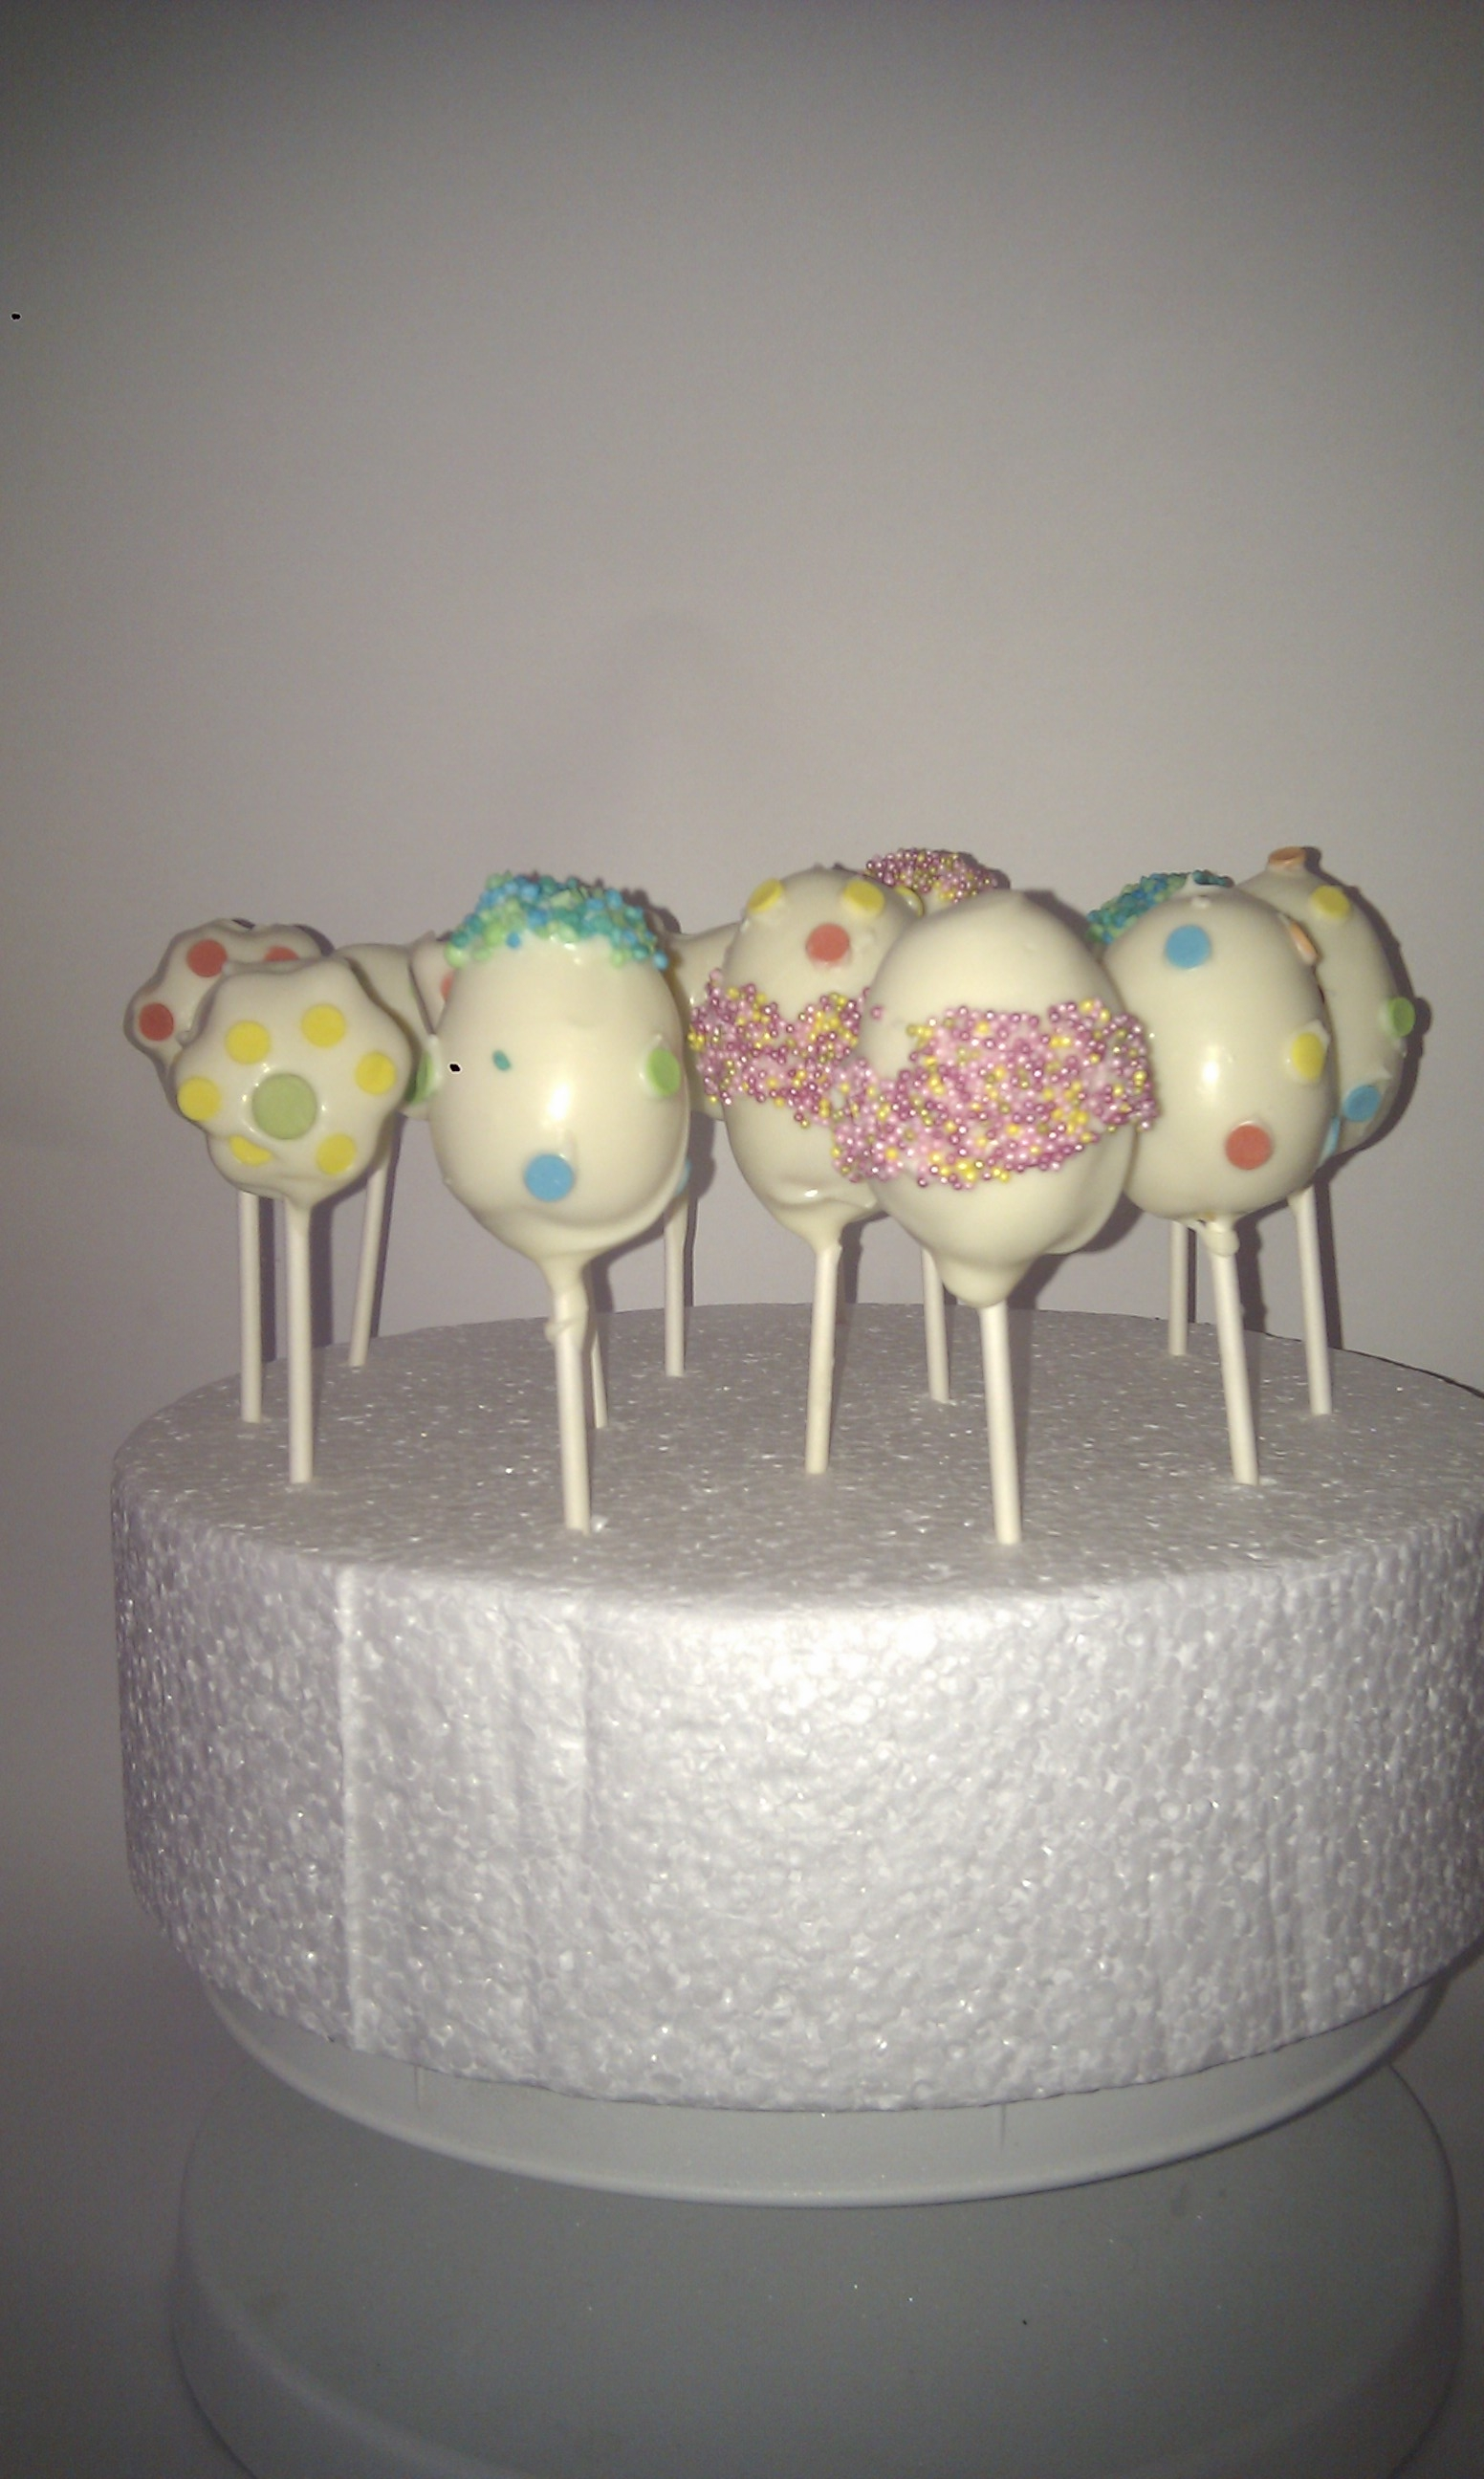 A selection of standard and fully designed cakepops